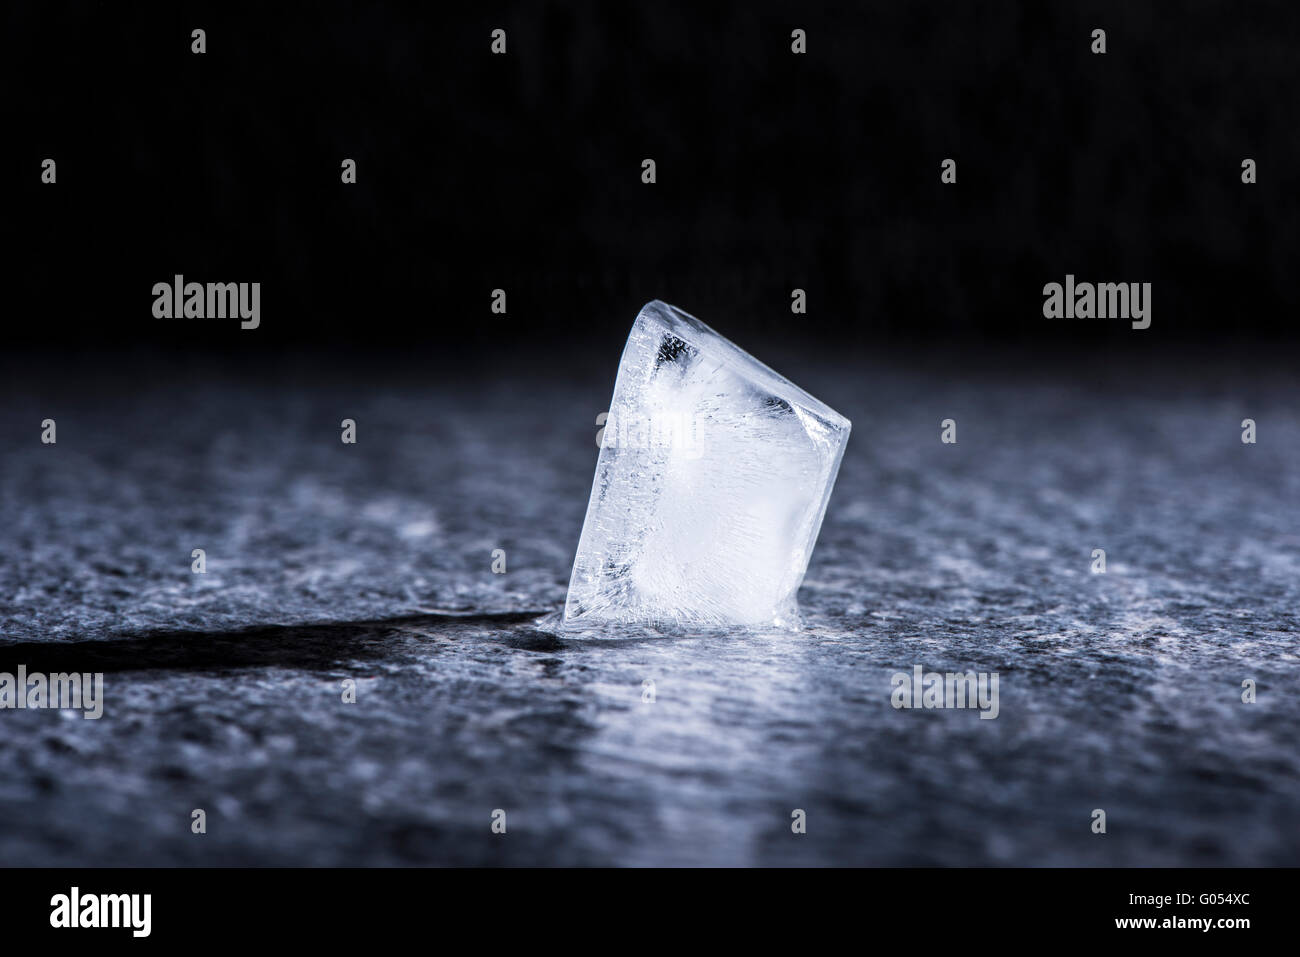 Cube de glace fondante en close up. Notion de température froide, l'eau et de changement. Photo Stock